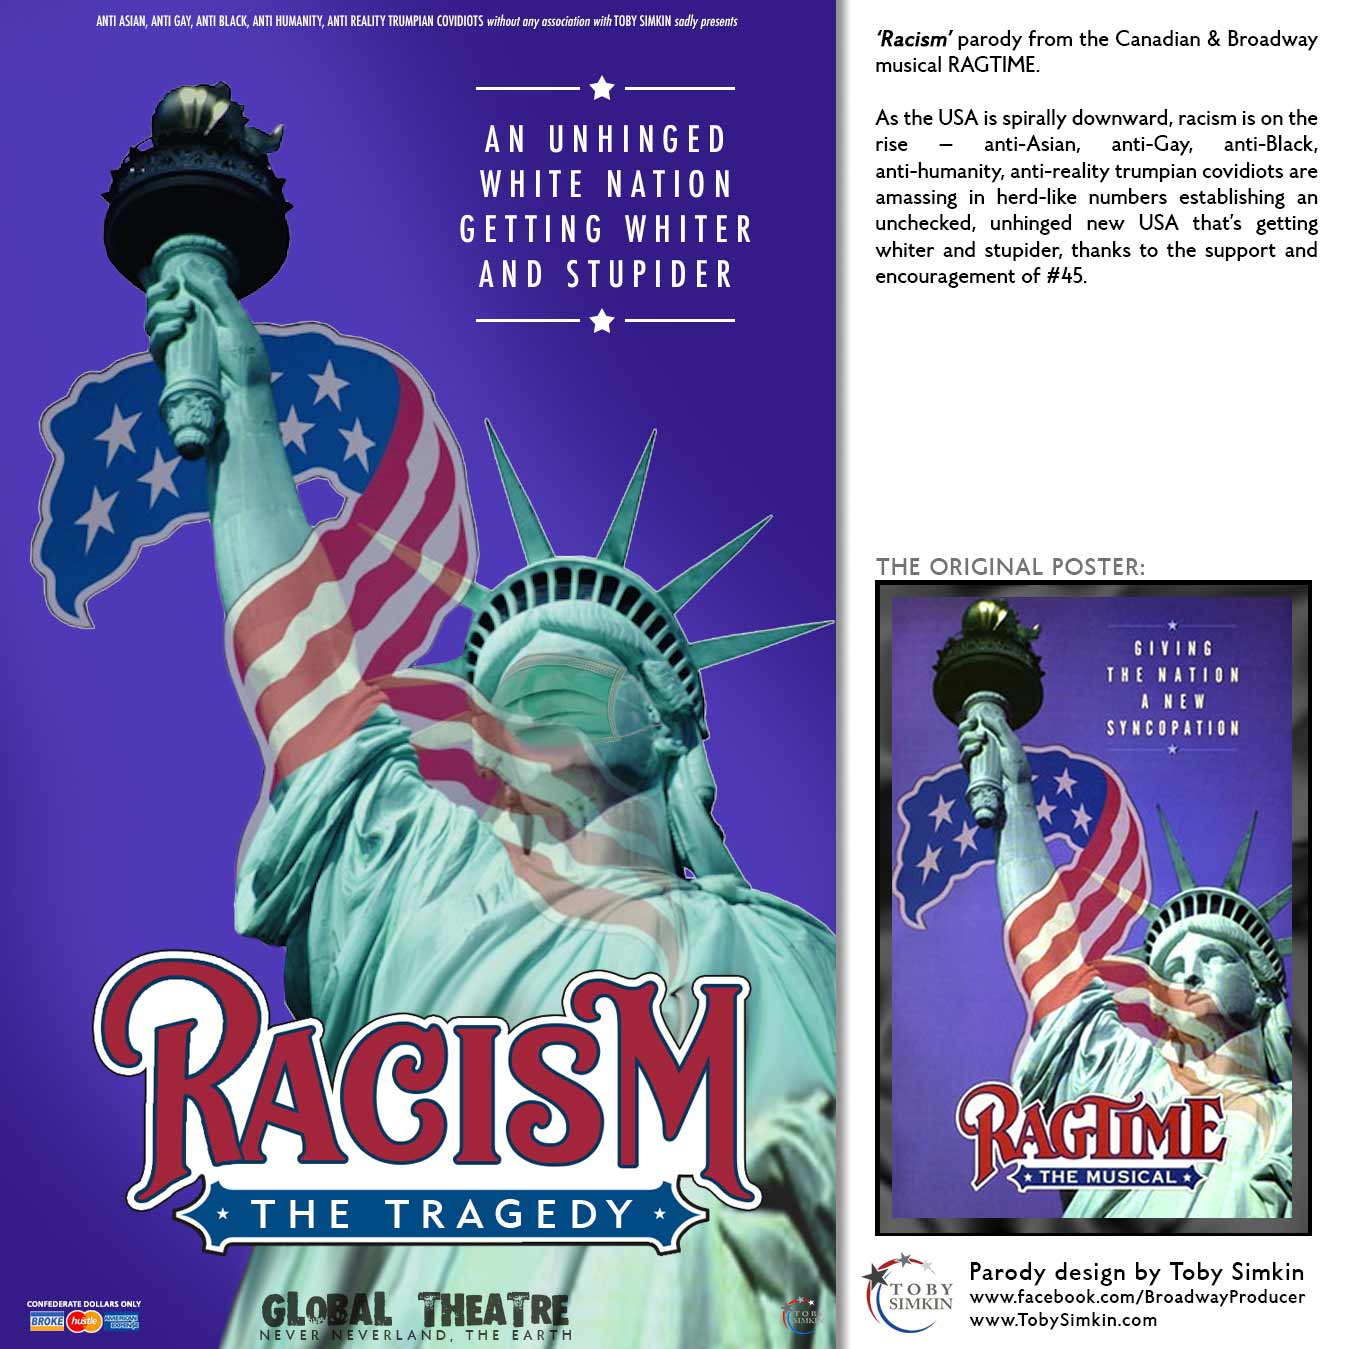 parody from the Canadian & Broadway musical RAGTIME